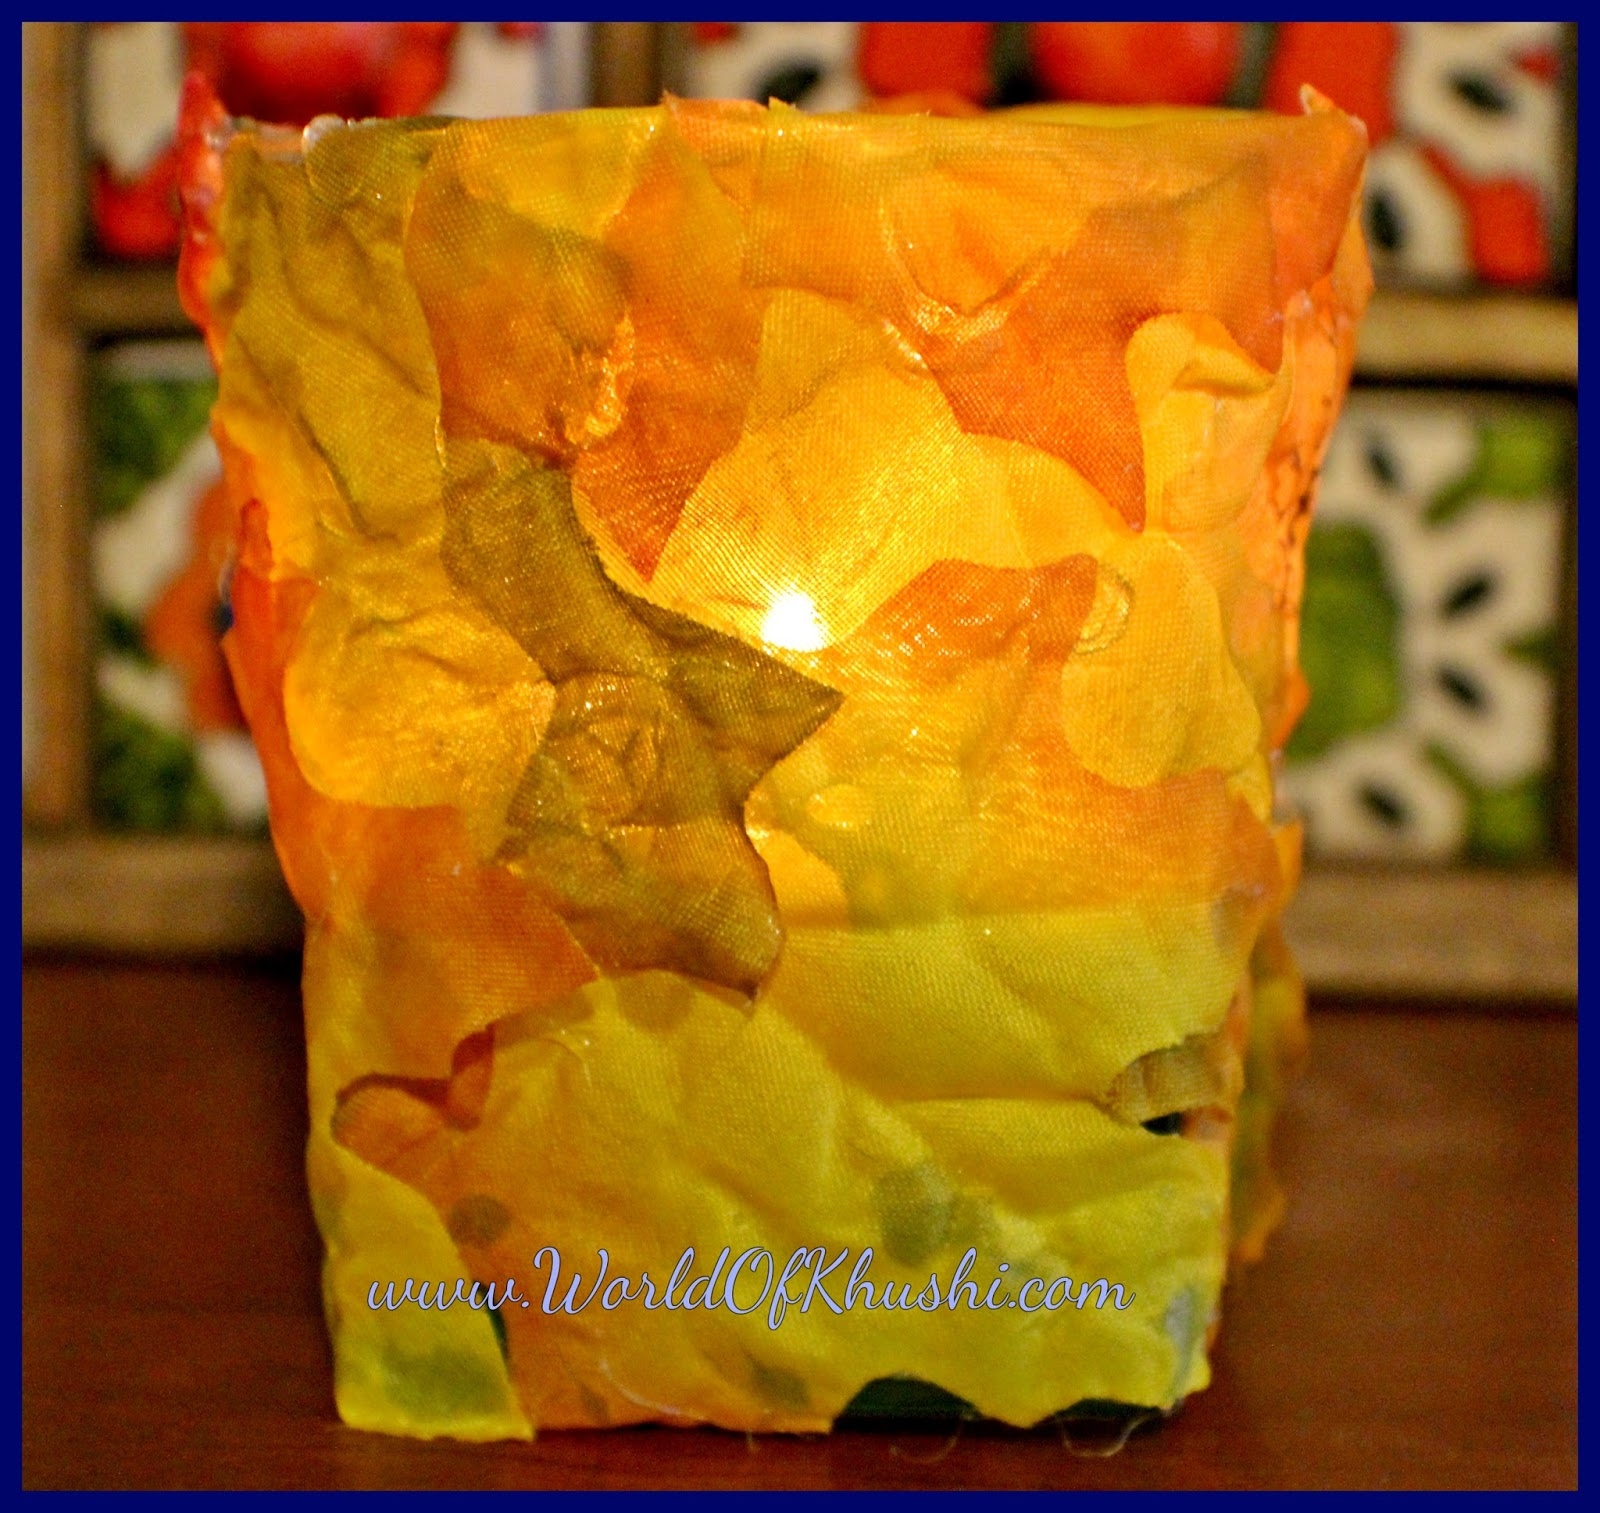 KhushiWorld: Autumn Leaves Candle Holder